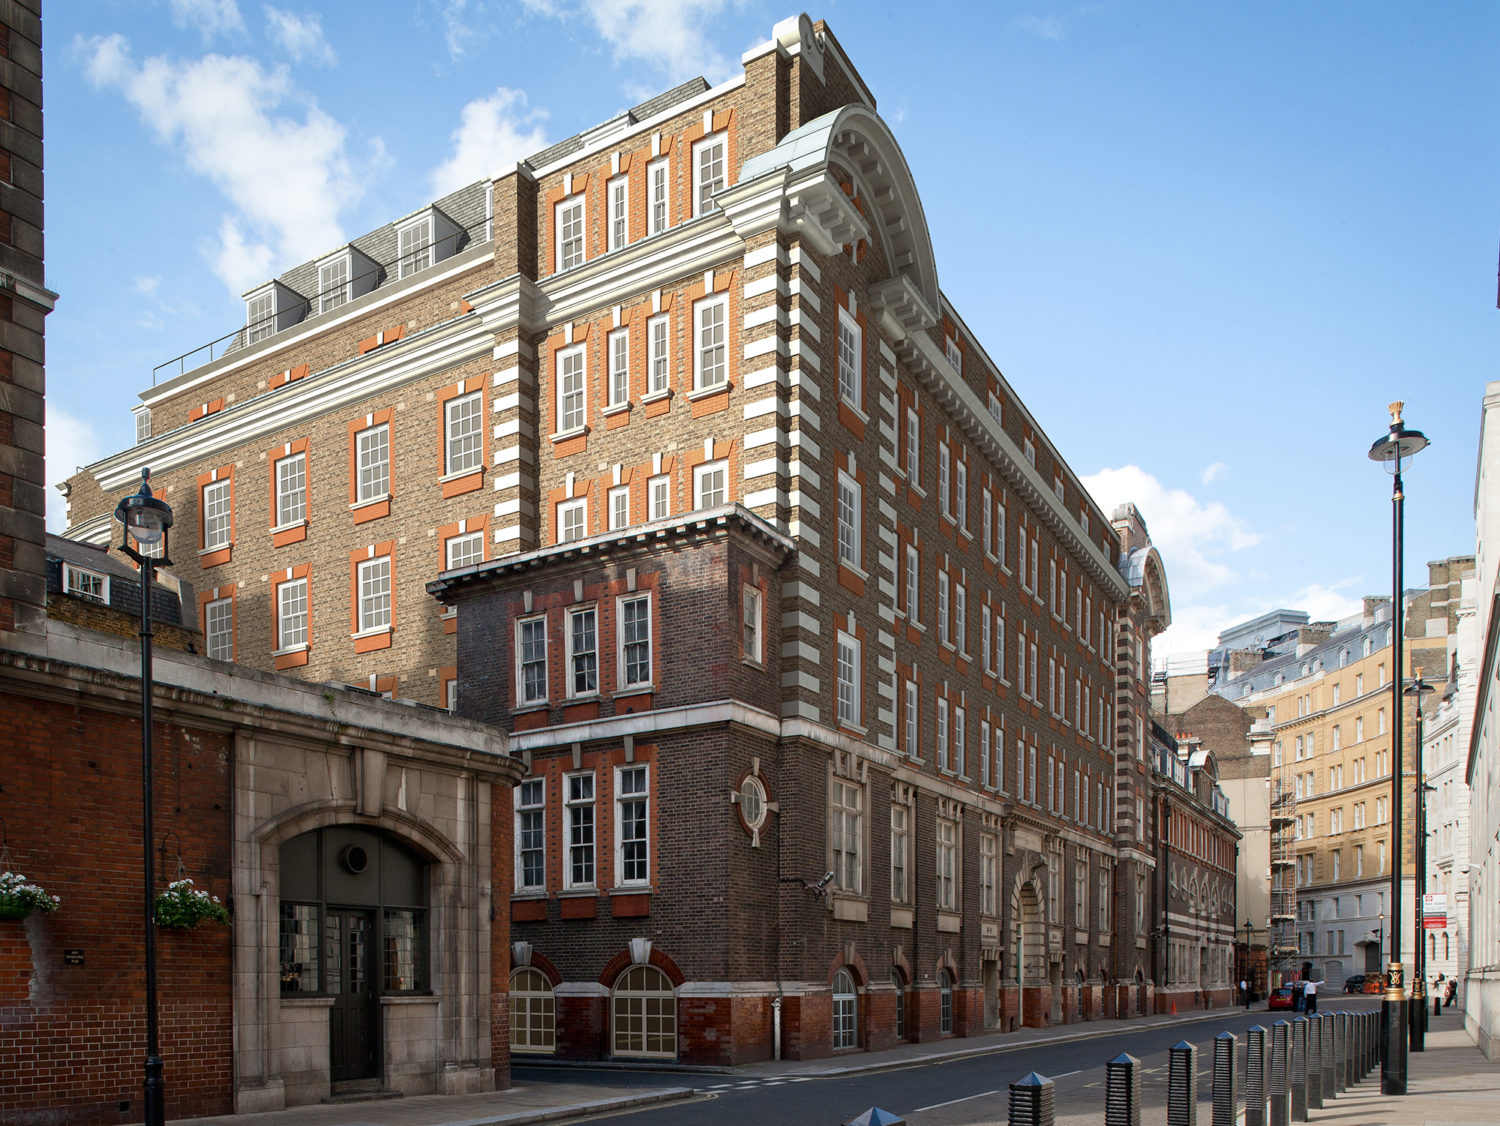 Transformed at a reported cost of 75 million pounds, the hotel located close to Trafalgar Square has over 150 rooms, some converted from what were previously cells where criminals were incarcerated.